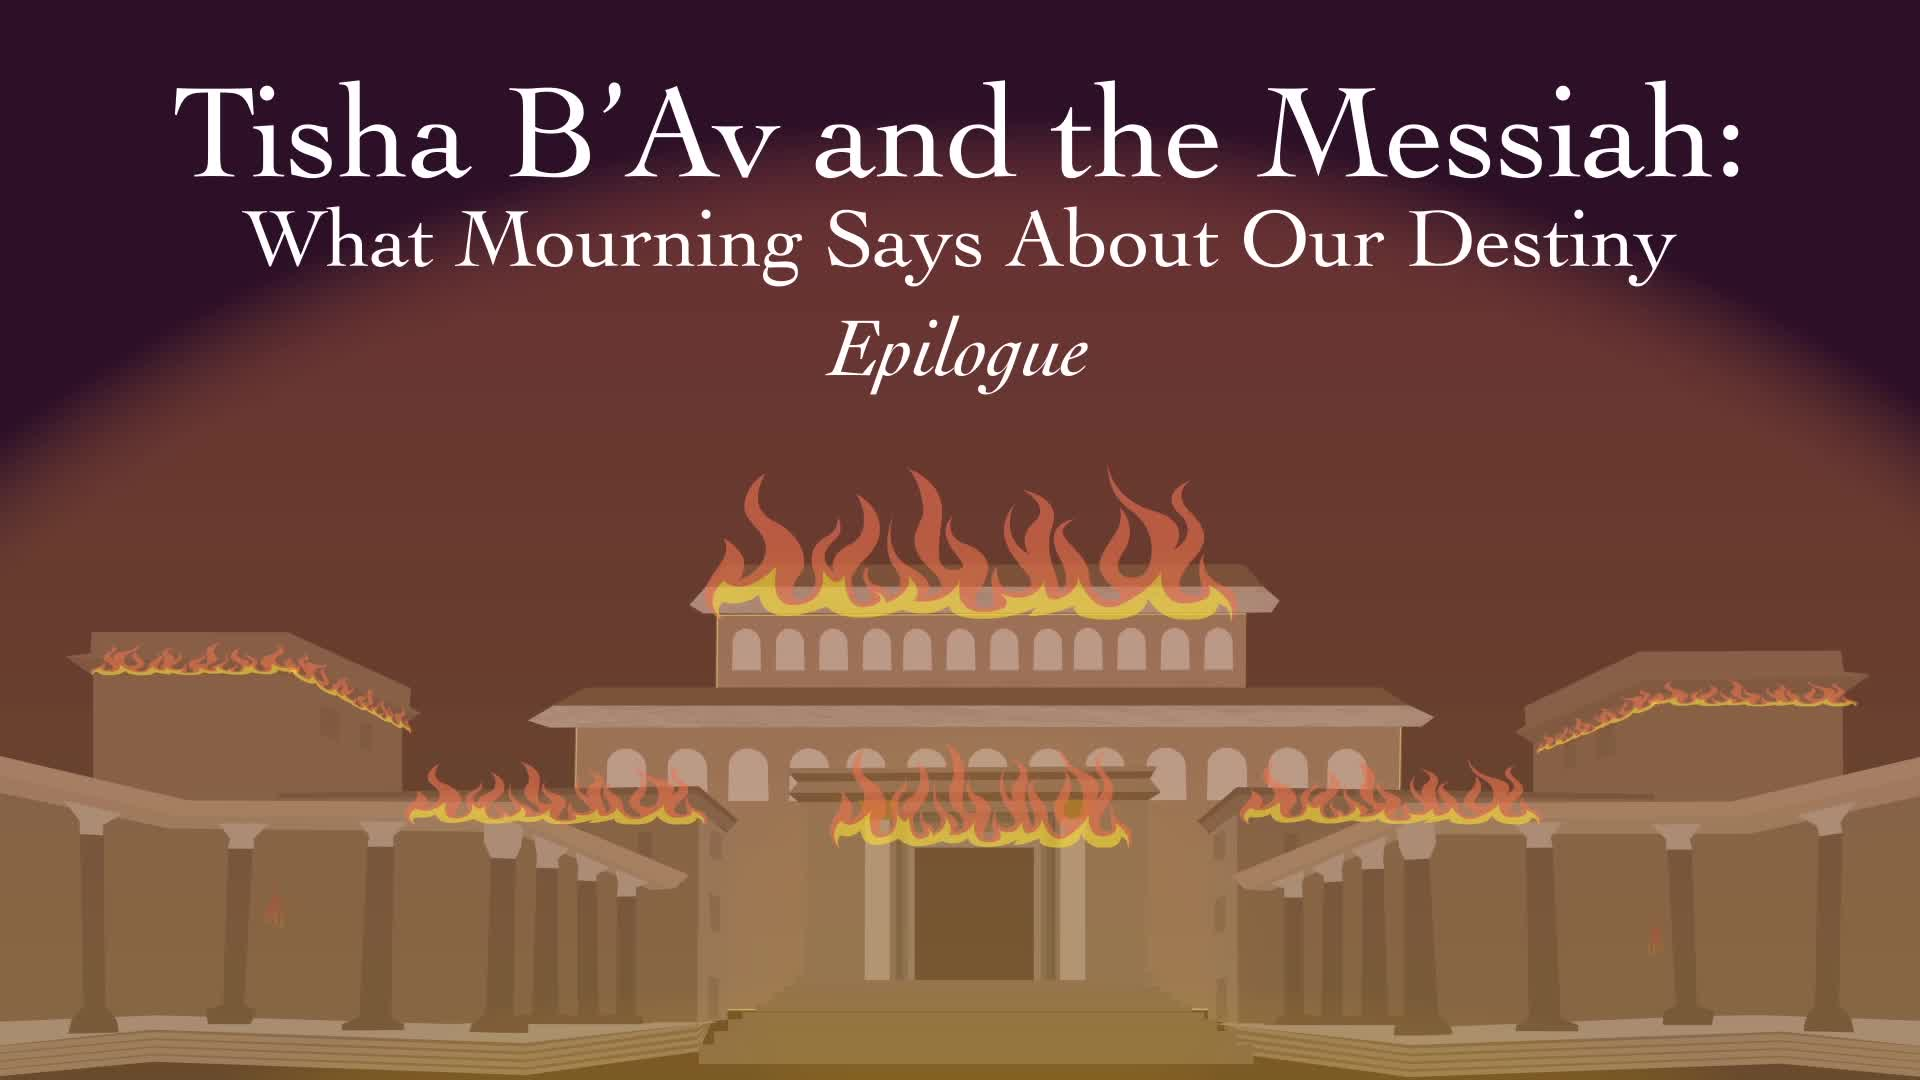 Tisha B'Av and Mashiach: Epilogue